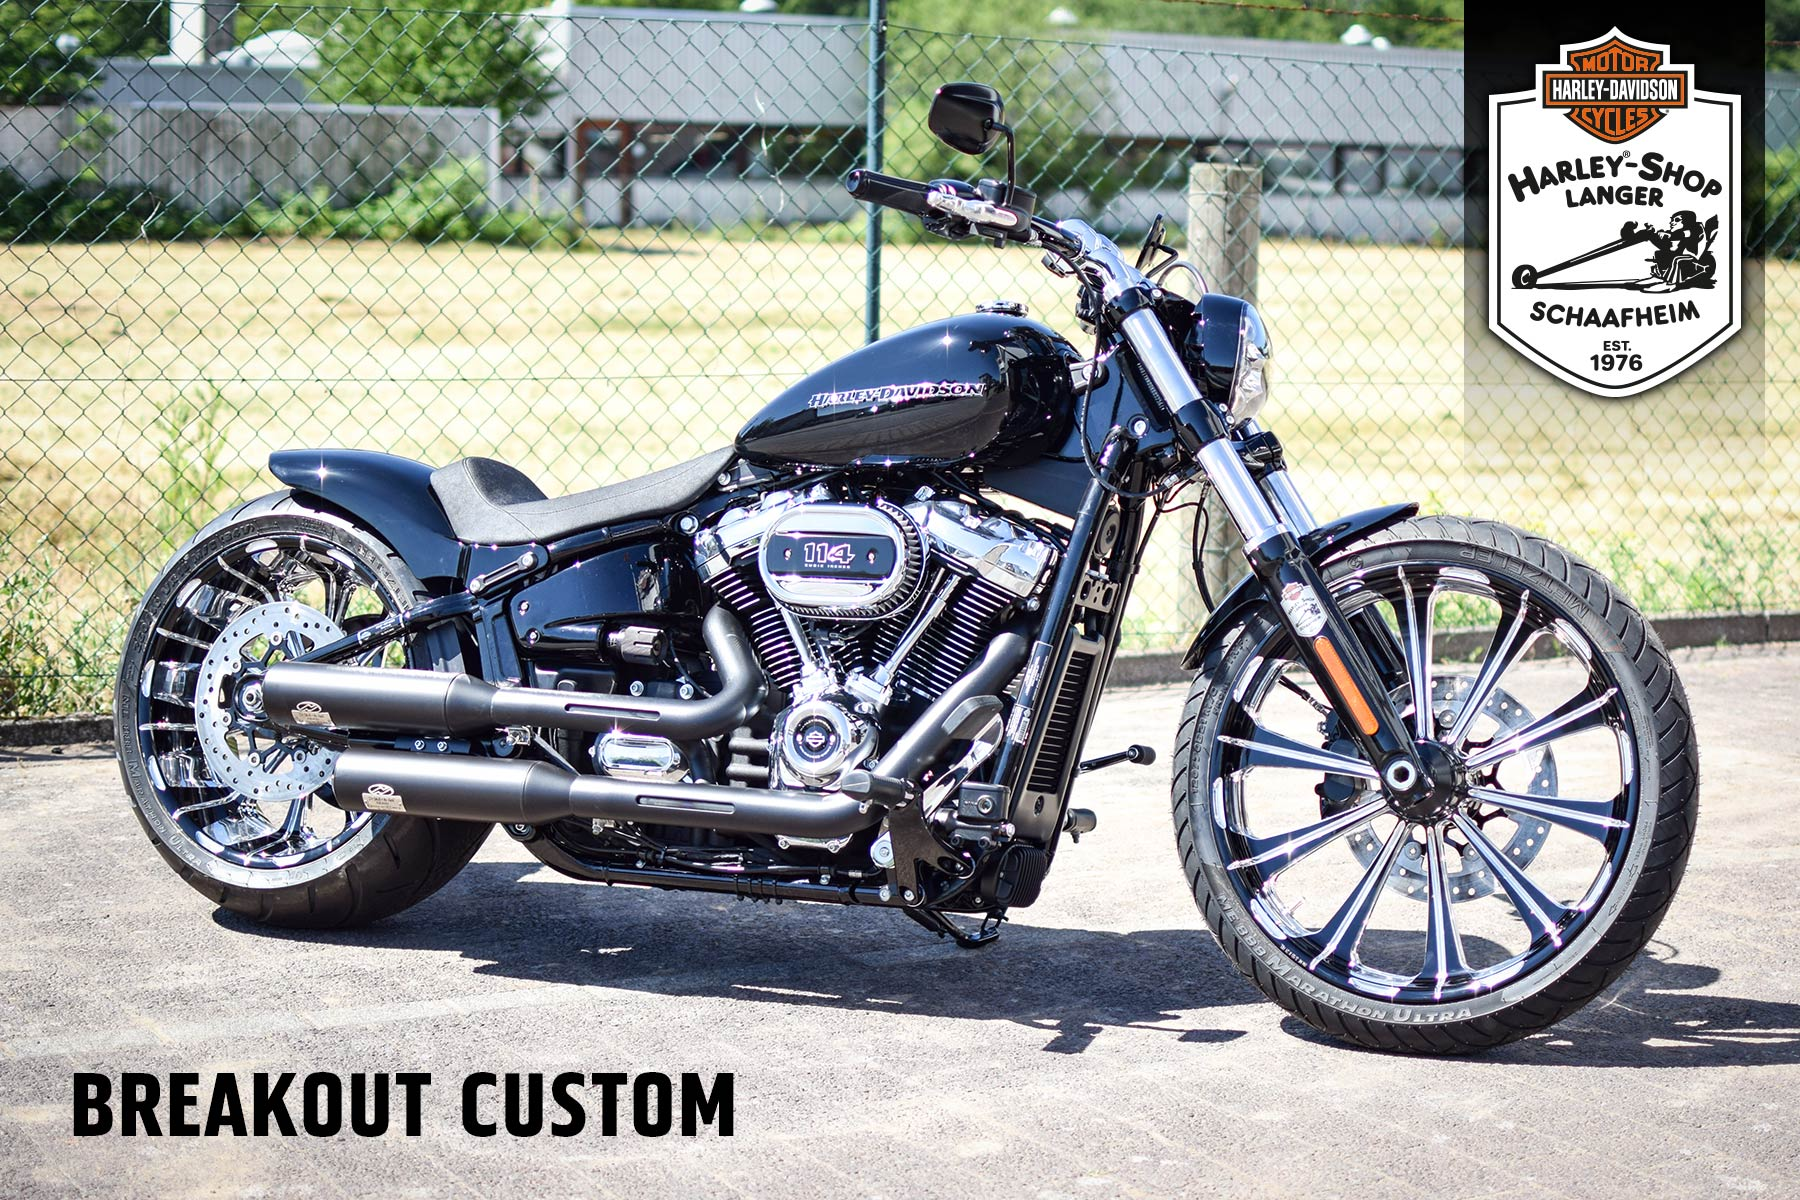 Harley-Shop Langer Umbau Breakout Custom Bike